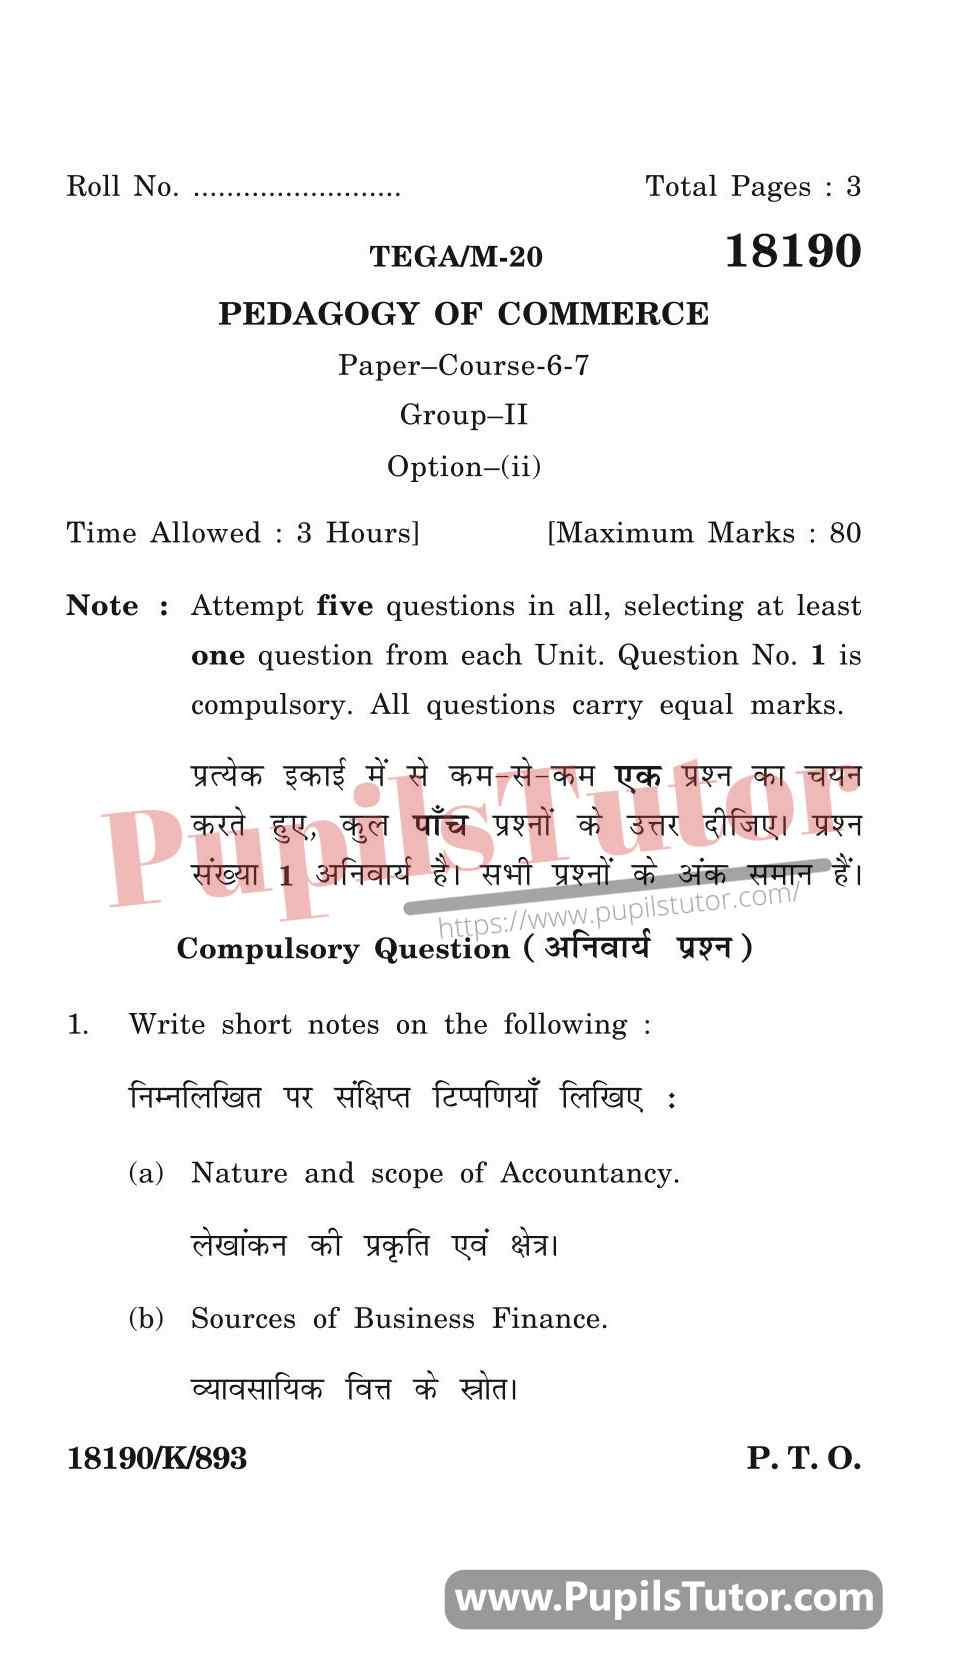 KUK (Kurukshetra University, Haryana) Pedagogy Of Commerce Question Paper 2020 For B.Ed 1st And 2nd Year And All The 4 Semesters In English And Hindi Medium Free Download PDF - Page 1 - Pupils Tutor